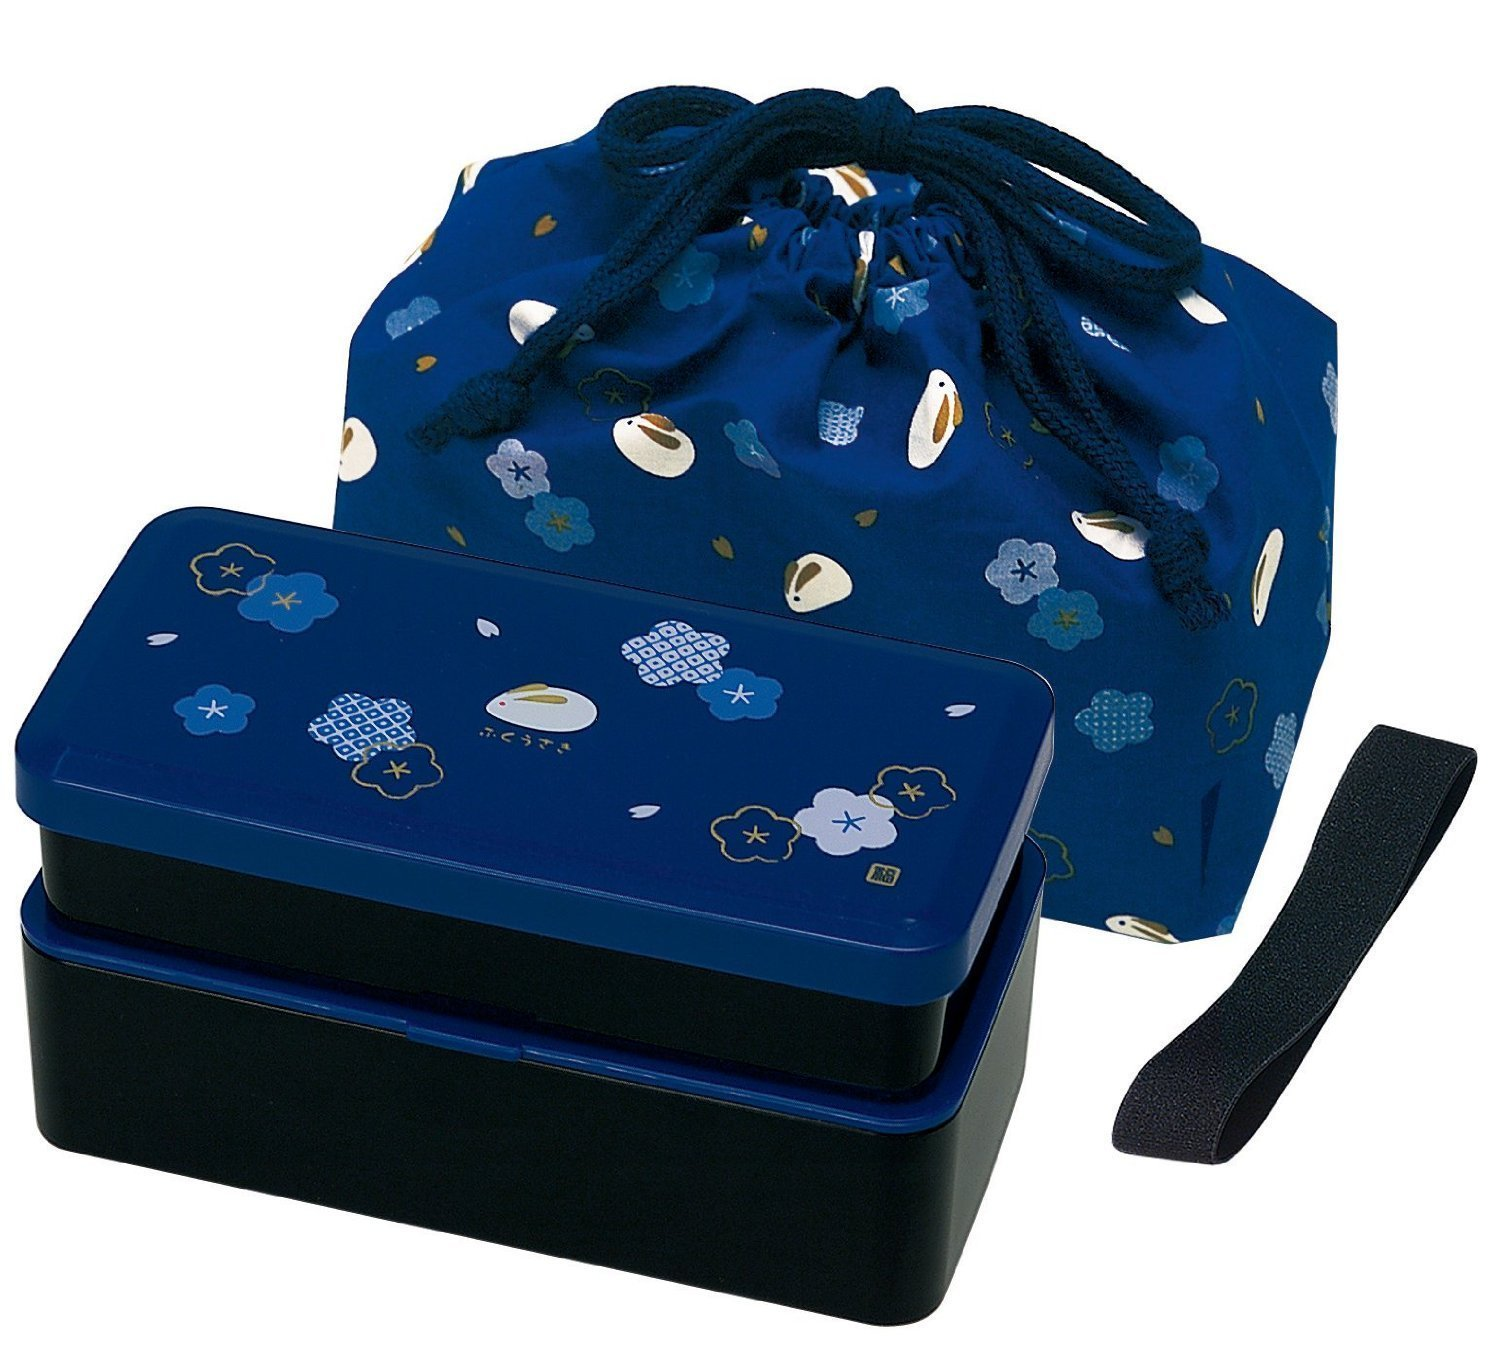 Japanese Traditional Rabbit Blossom Bento Box Set - Square 2 Tier Bento Box, Rice Ball Press, Bento Bag (Blue)